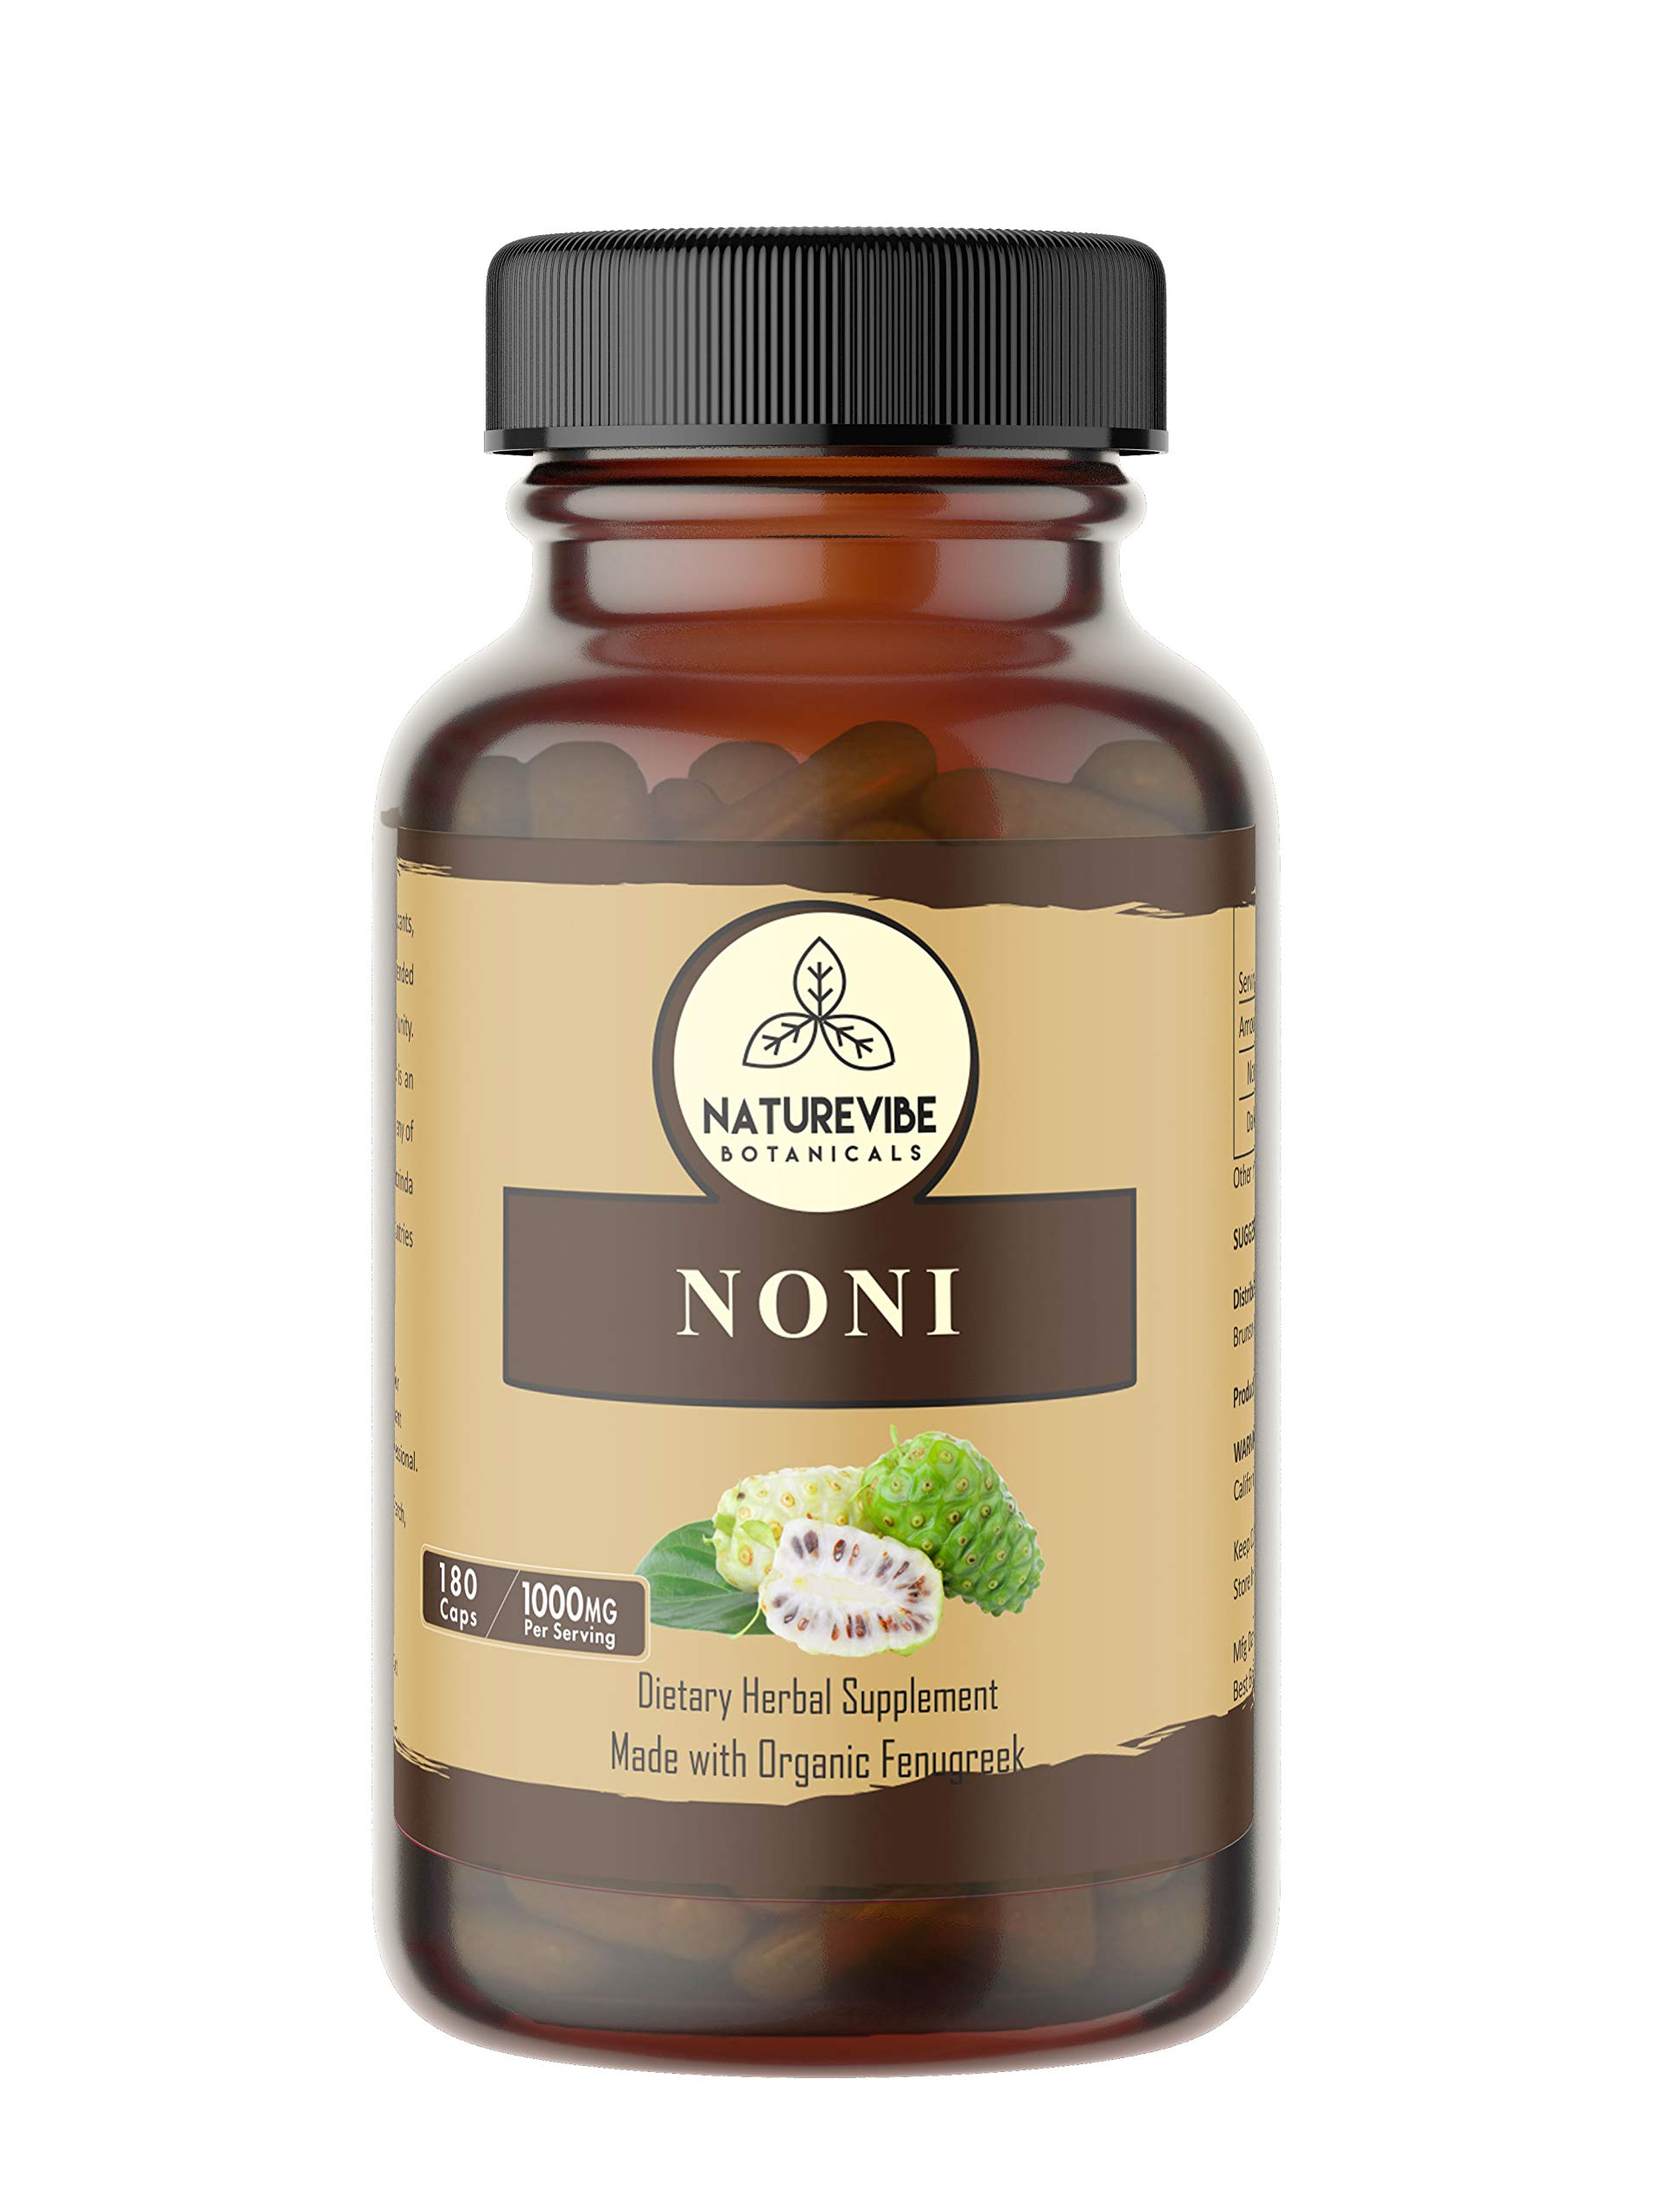 180 Capsules Organic Noni Fruit -100% Organic Noni Fruit Powder, 1000mg Per Serving | Veg Capsules by Naturevibe Botanicals (Image #1)